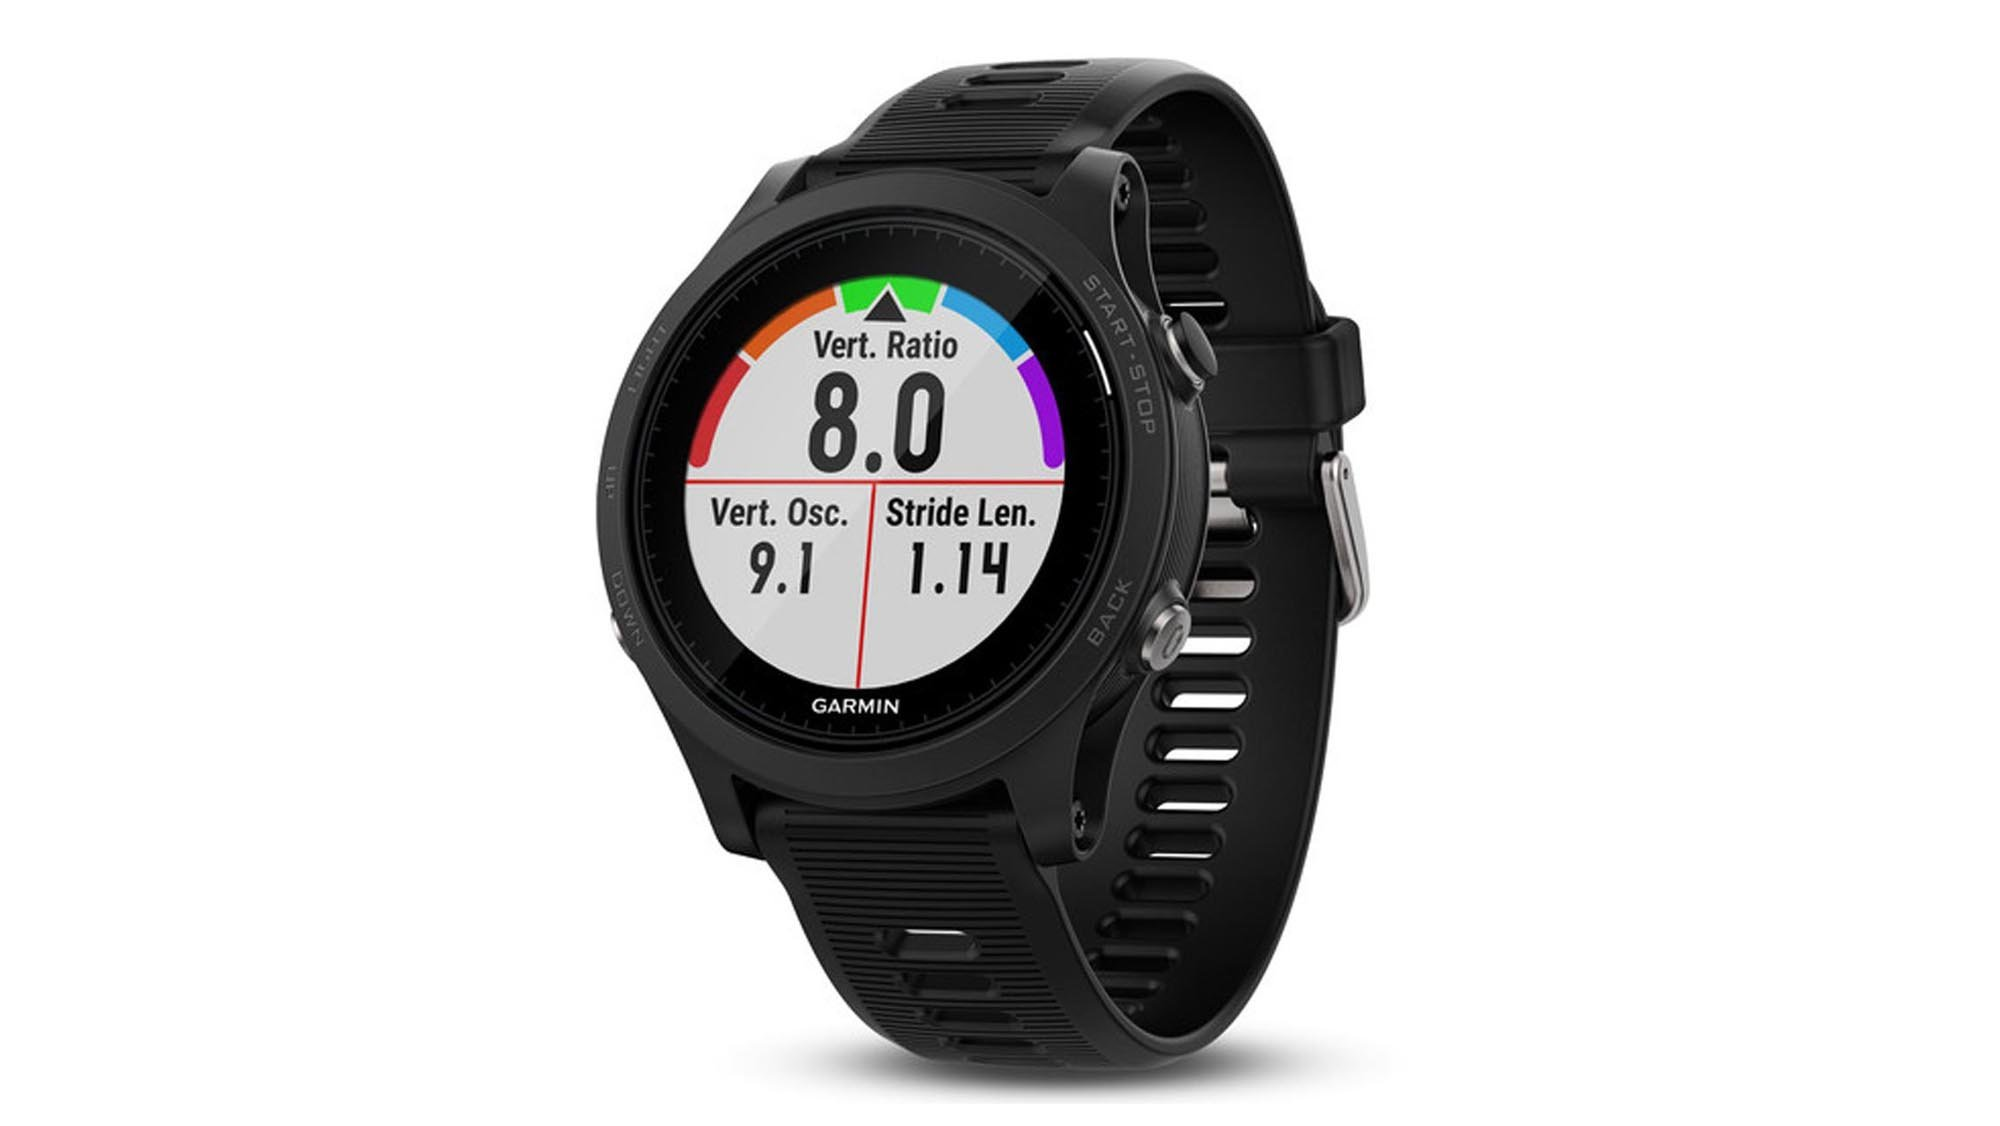 Best running watch 2018 transform your training with gps tracking heart rate monitoring and for Watches garmin